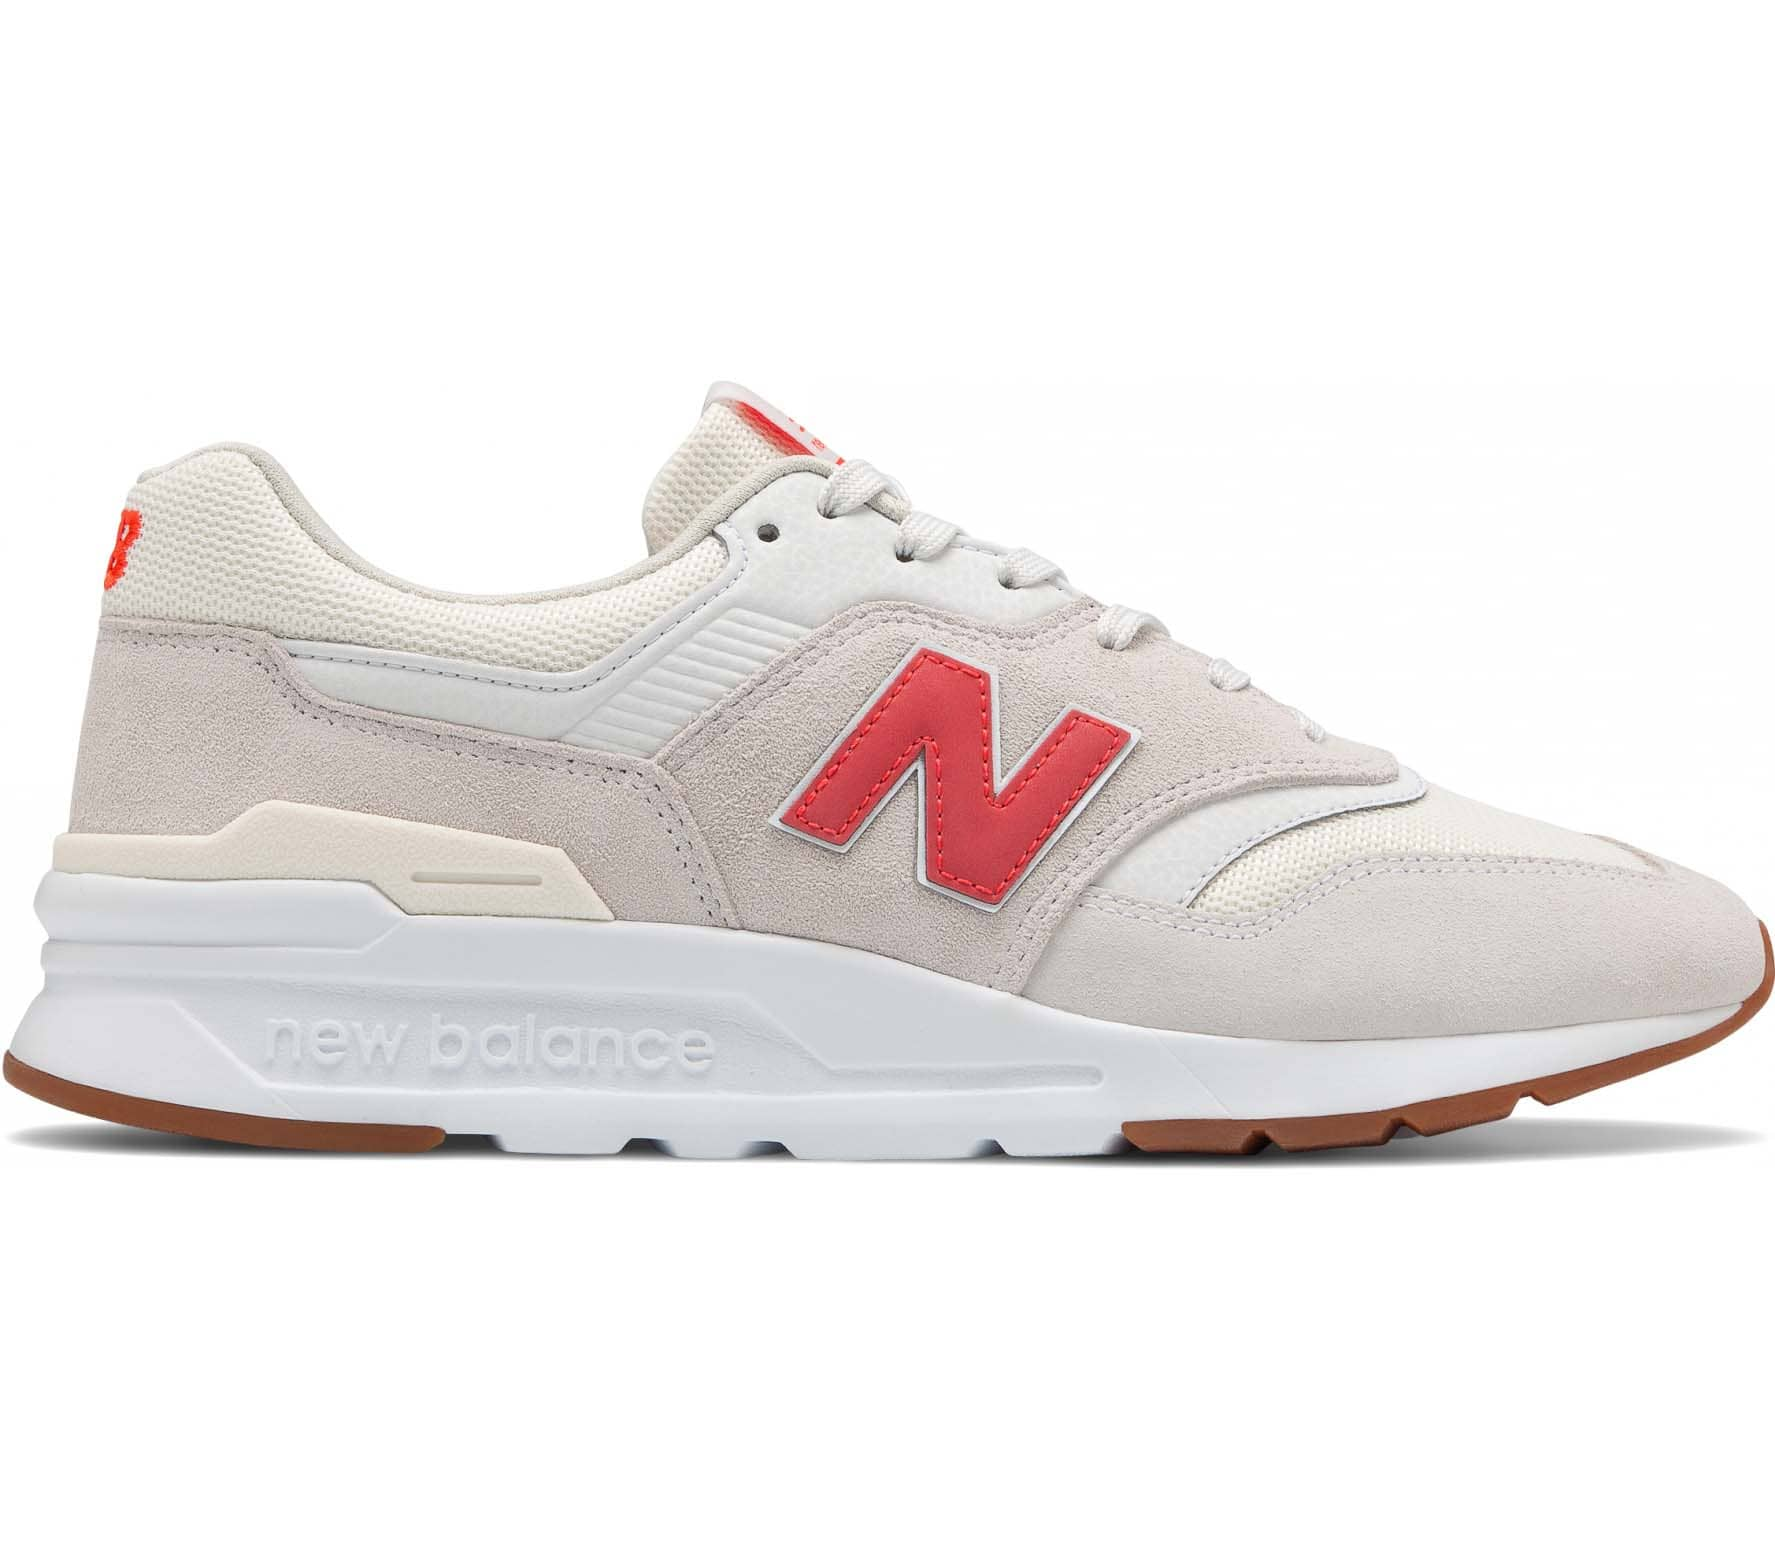 13daa3d29a418 New Balance 997 H Men white - buy it at the Keller Sports online shop